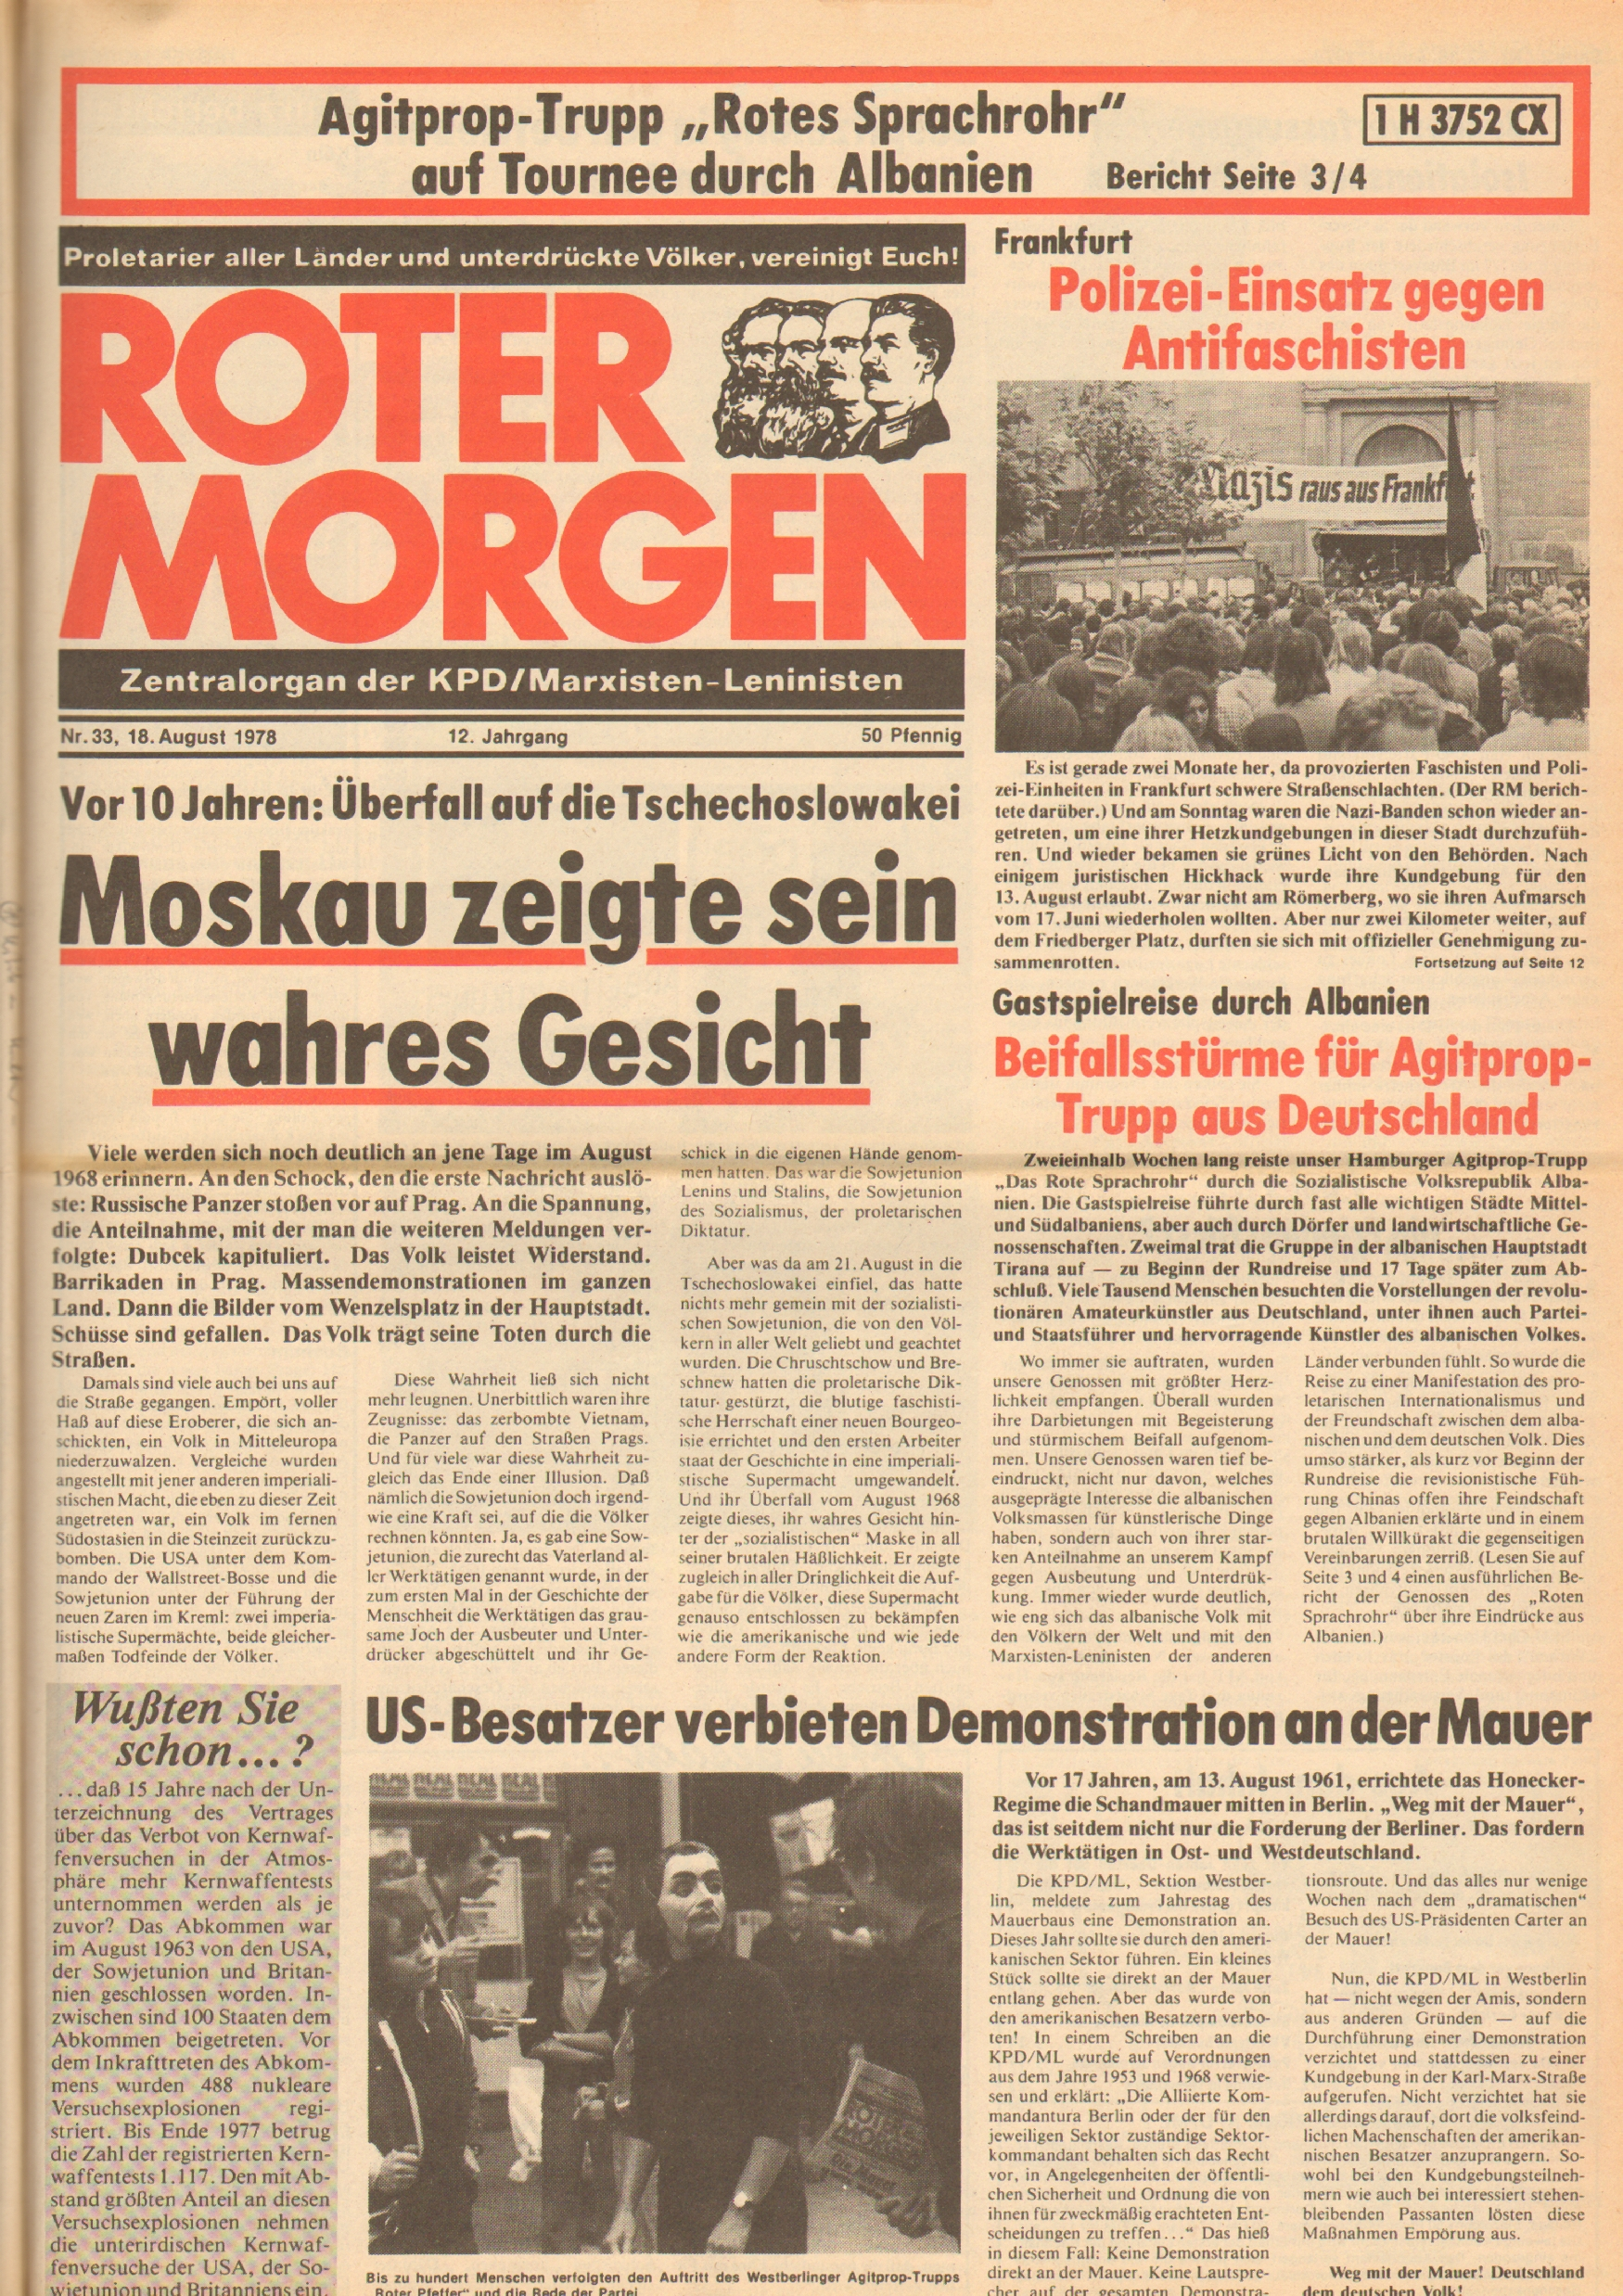 Roter Morgen, 12. Jg., 18. August 1978, Nr. 33, Seite 1